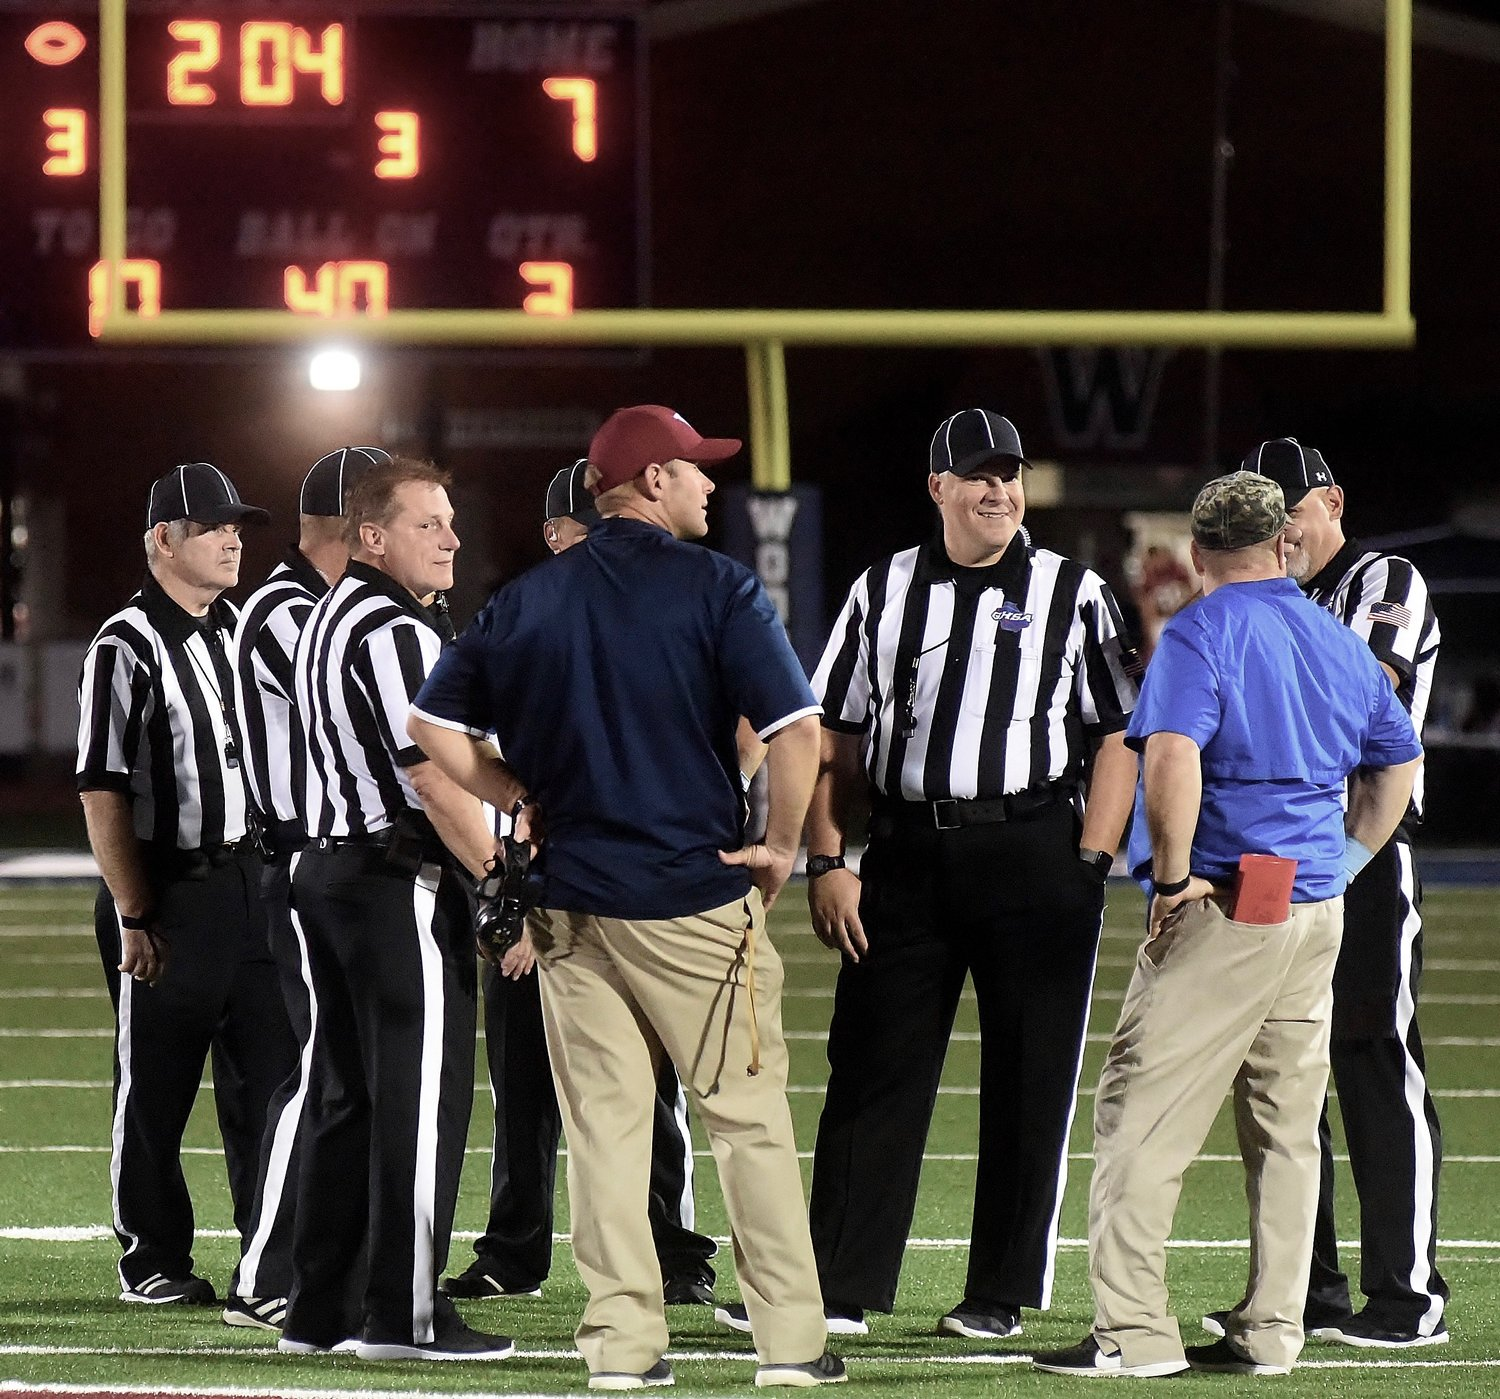 Woodland head coach Tony Plott, left, and Cass head coach Bobby Hughes discuss the lightning delay with game officials Friday night at Wildcat Stadium. Cass was leading Woodland by a score of 24-7 when the game was suspended a second time. The remainder of the game will resume at 7 p.m. today.